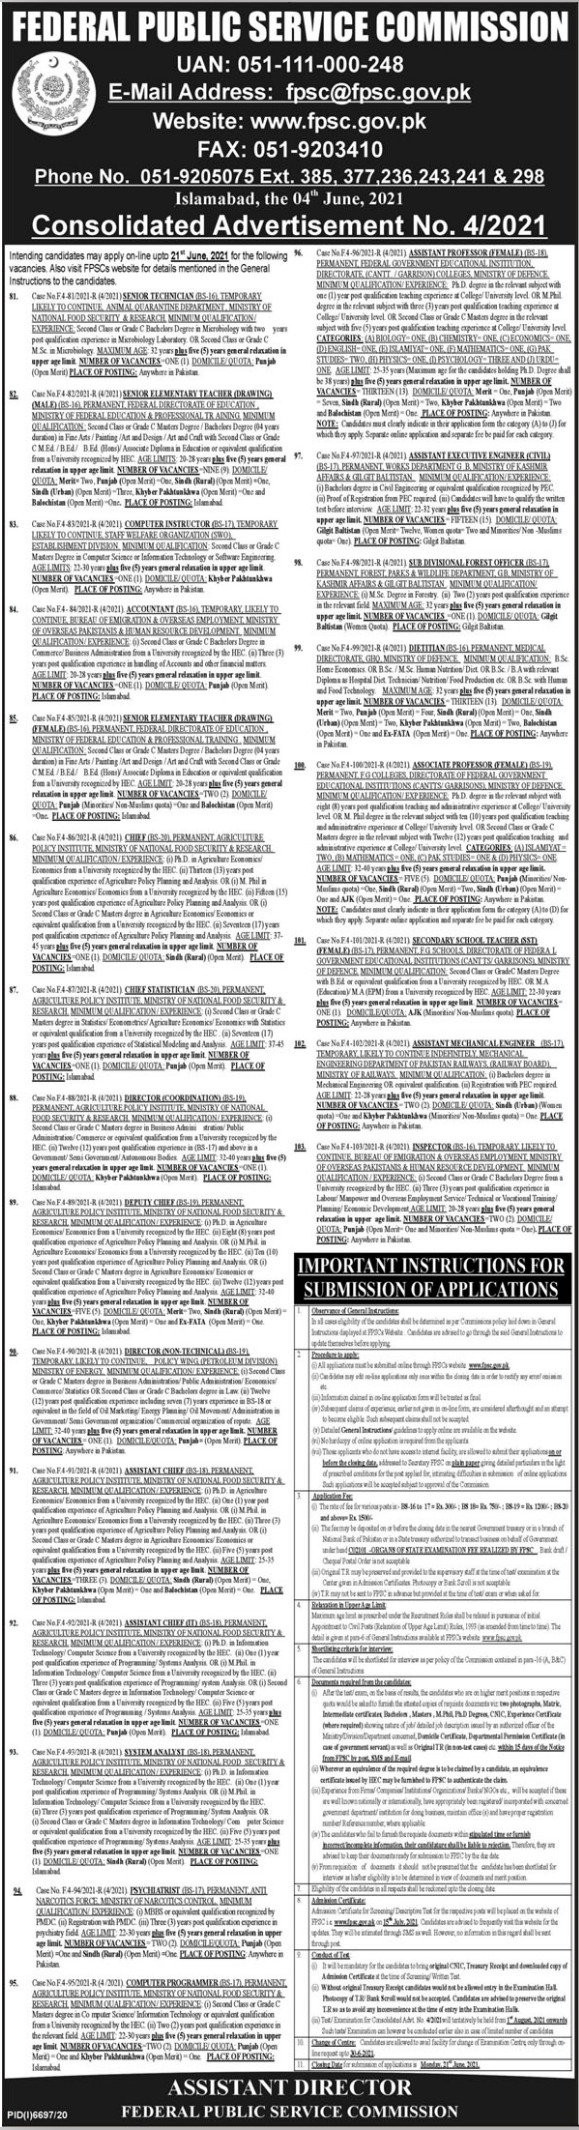 Jobs in Federal Public Service Commission FPSC 2021